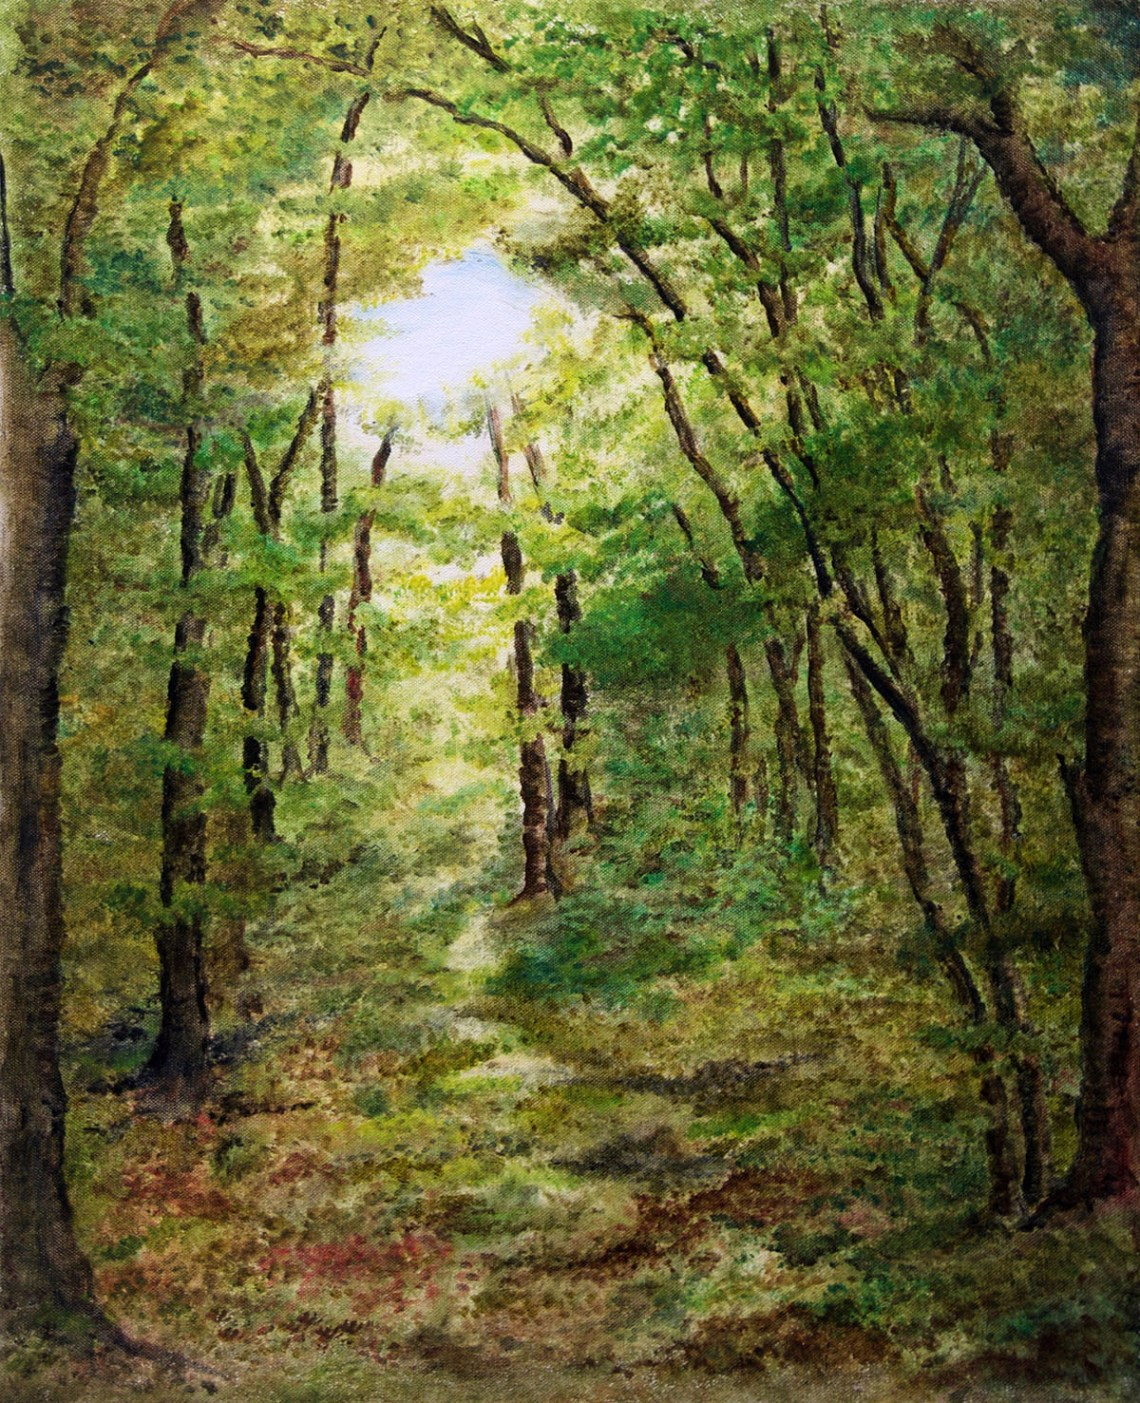 Into the woods, painting by Nirmal Pathare, oil on canvas, 23 x 18 inches. (This painting is part of the art exhibition TRIO)